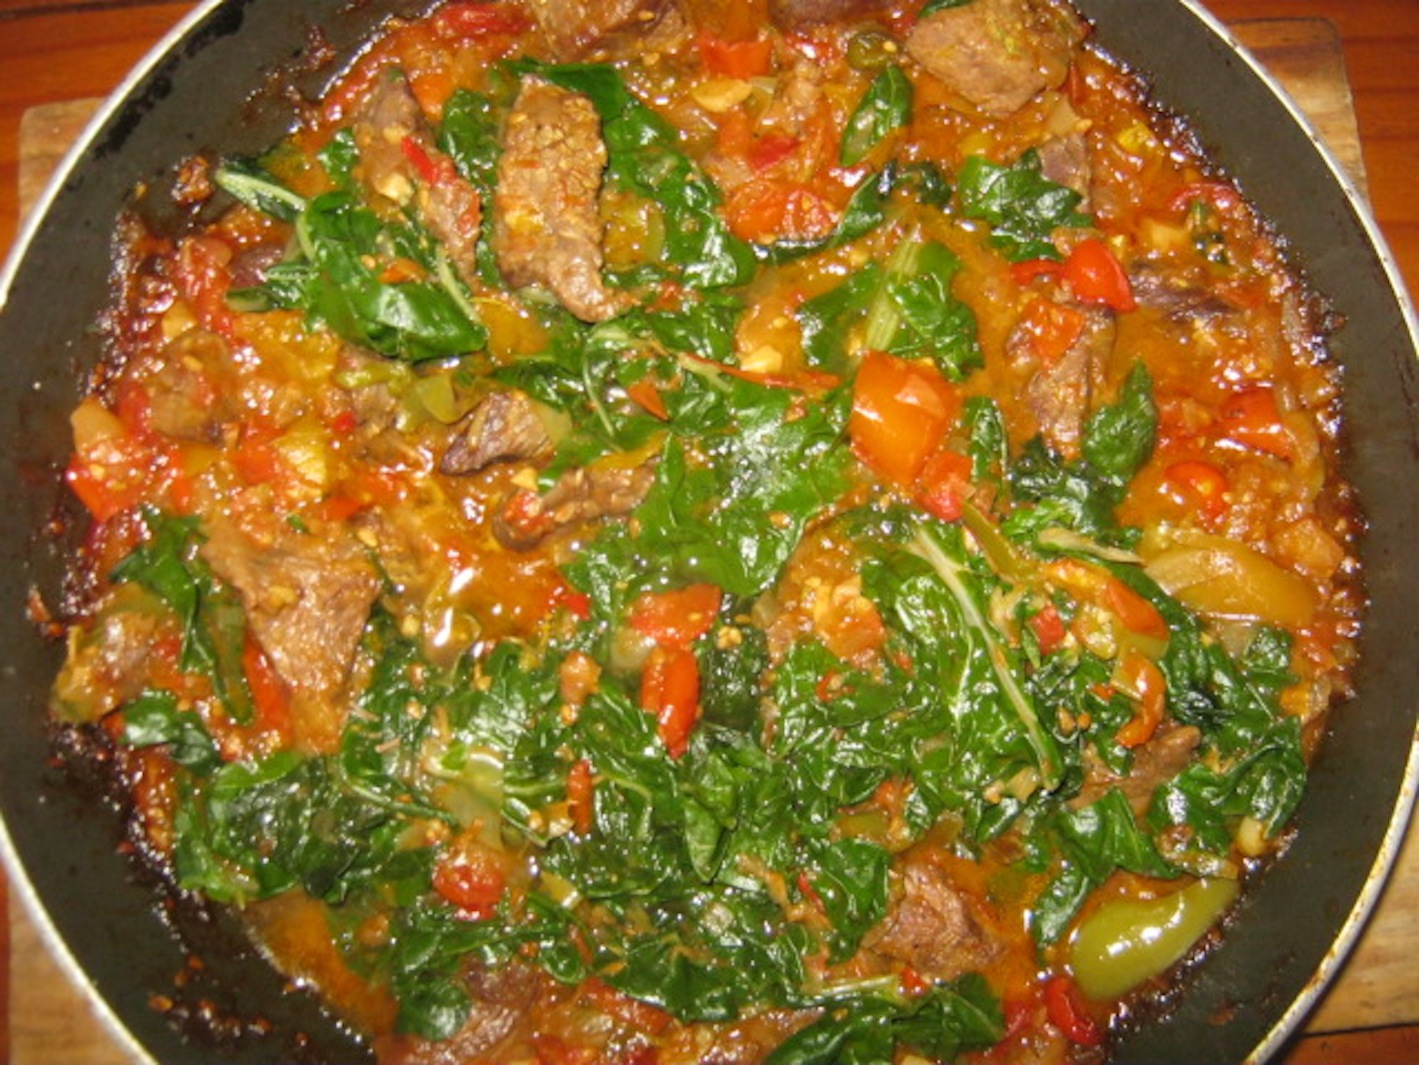 Shoko - Beef spinach stew from Ghana